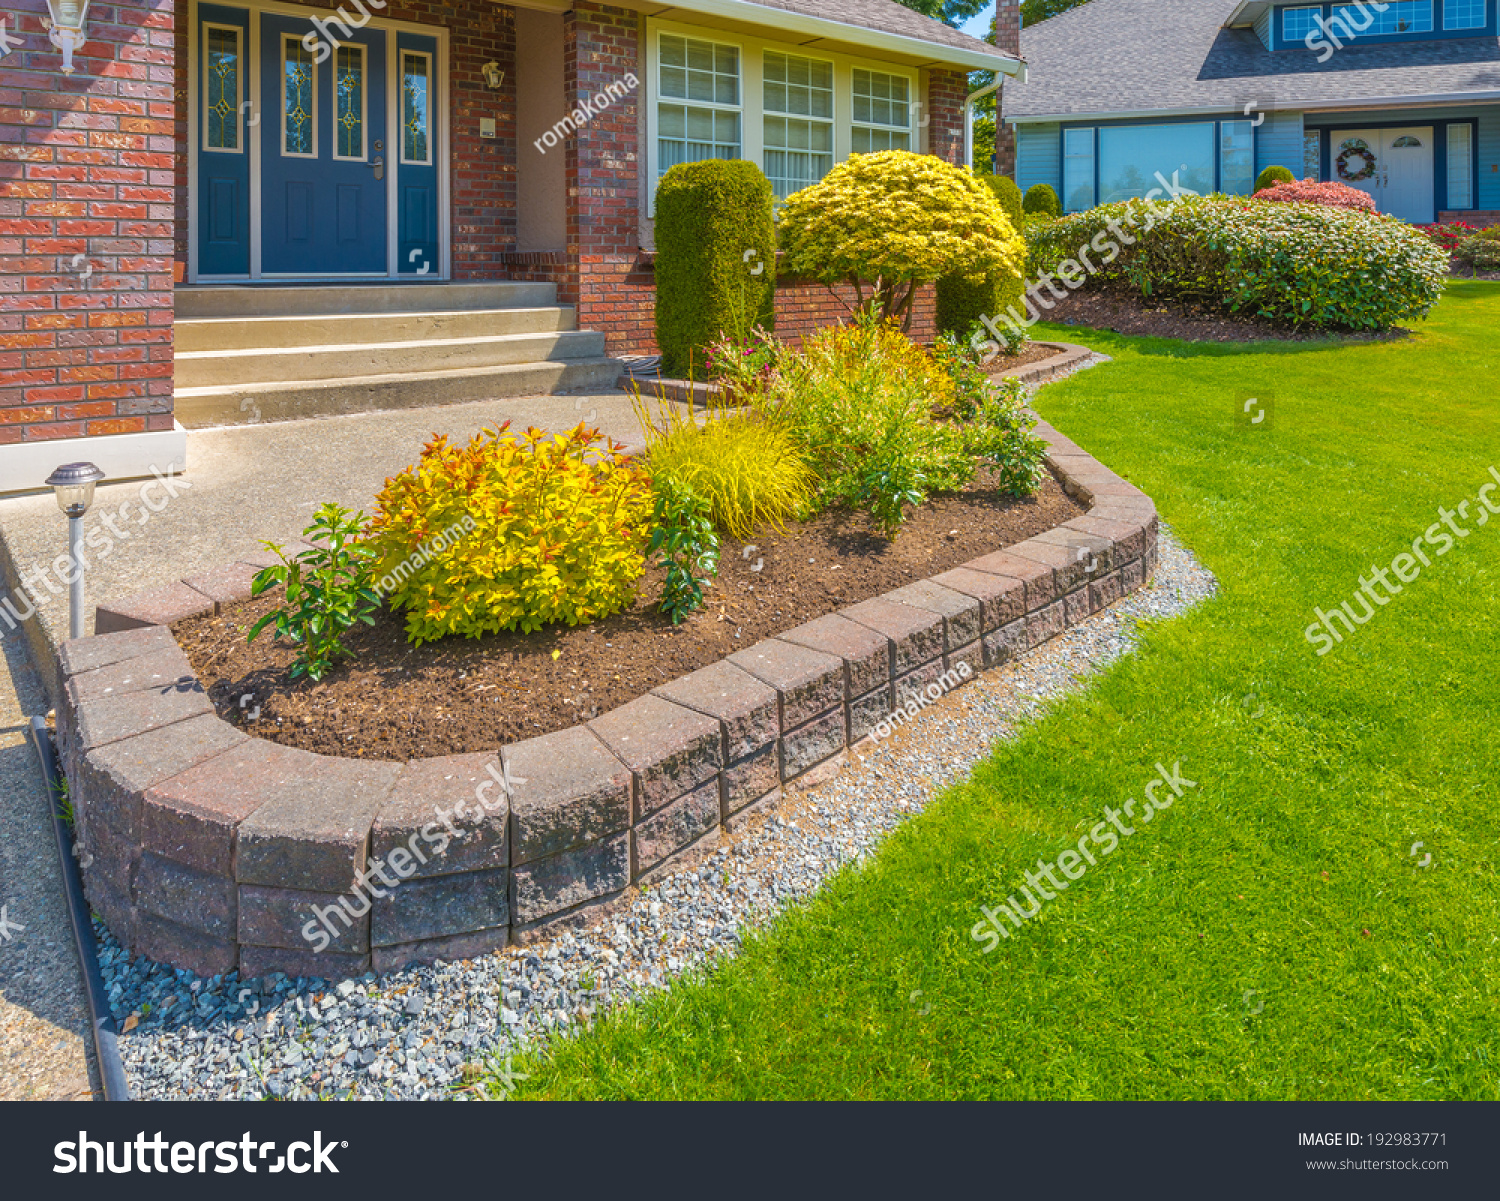 Decorative Stones For Flower Beds Nicely Decorated Colorful Flowerbed Front Yard Stock Photo